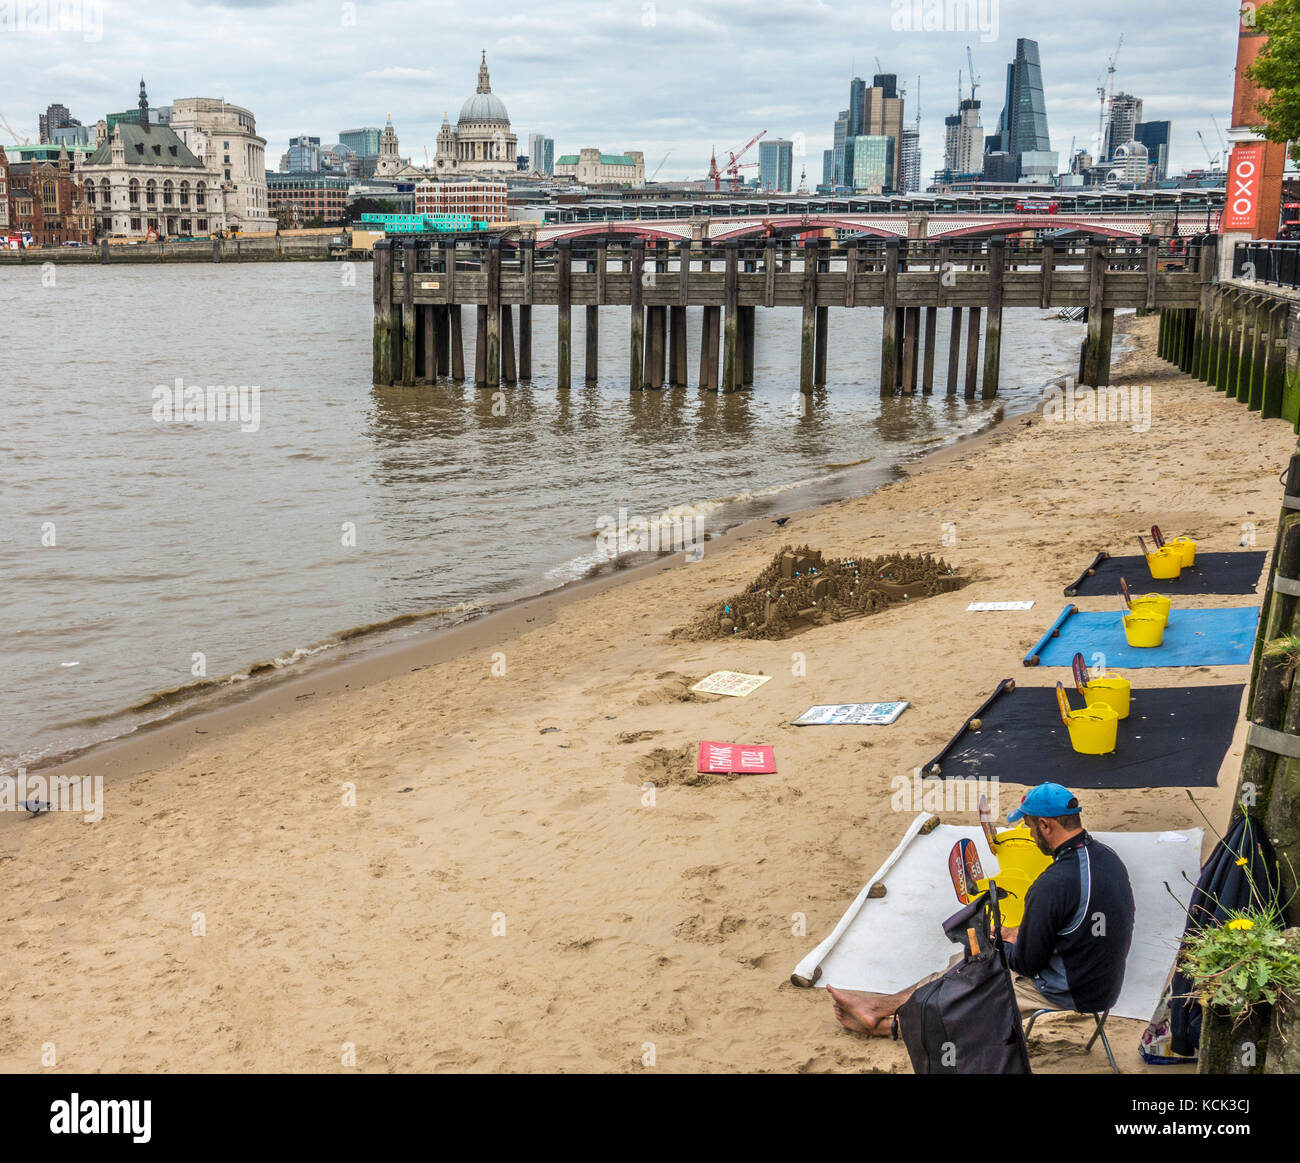 Sandcastle sculpture, with the sculptor seeking donations, on an urban beach with city view on  the River Thames - Stock Image